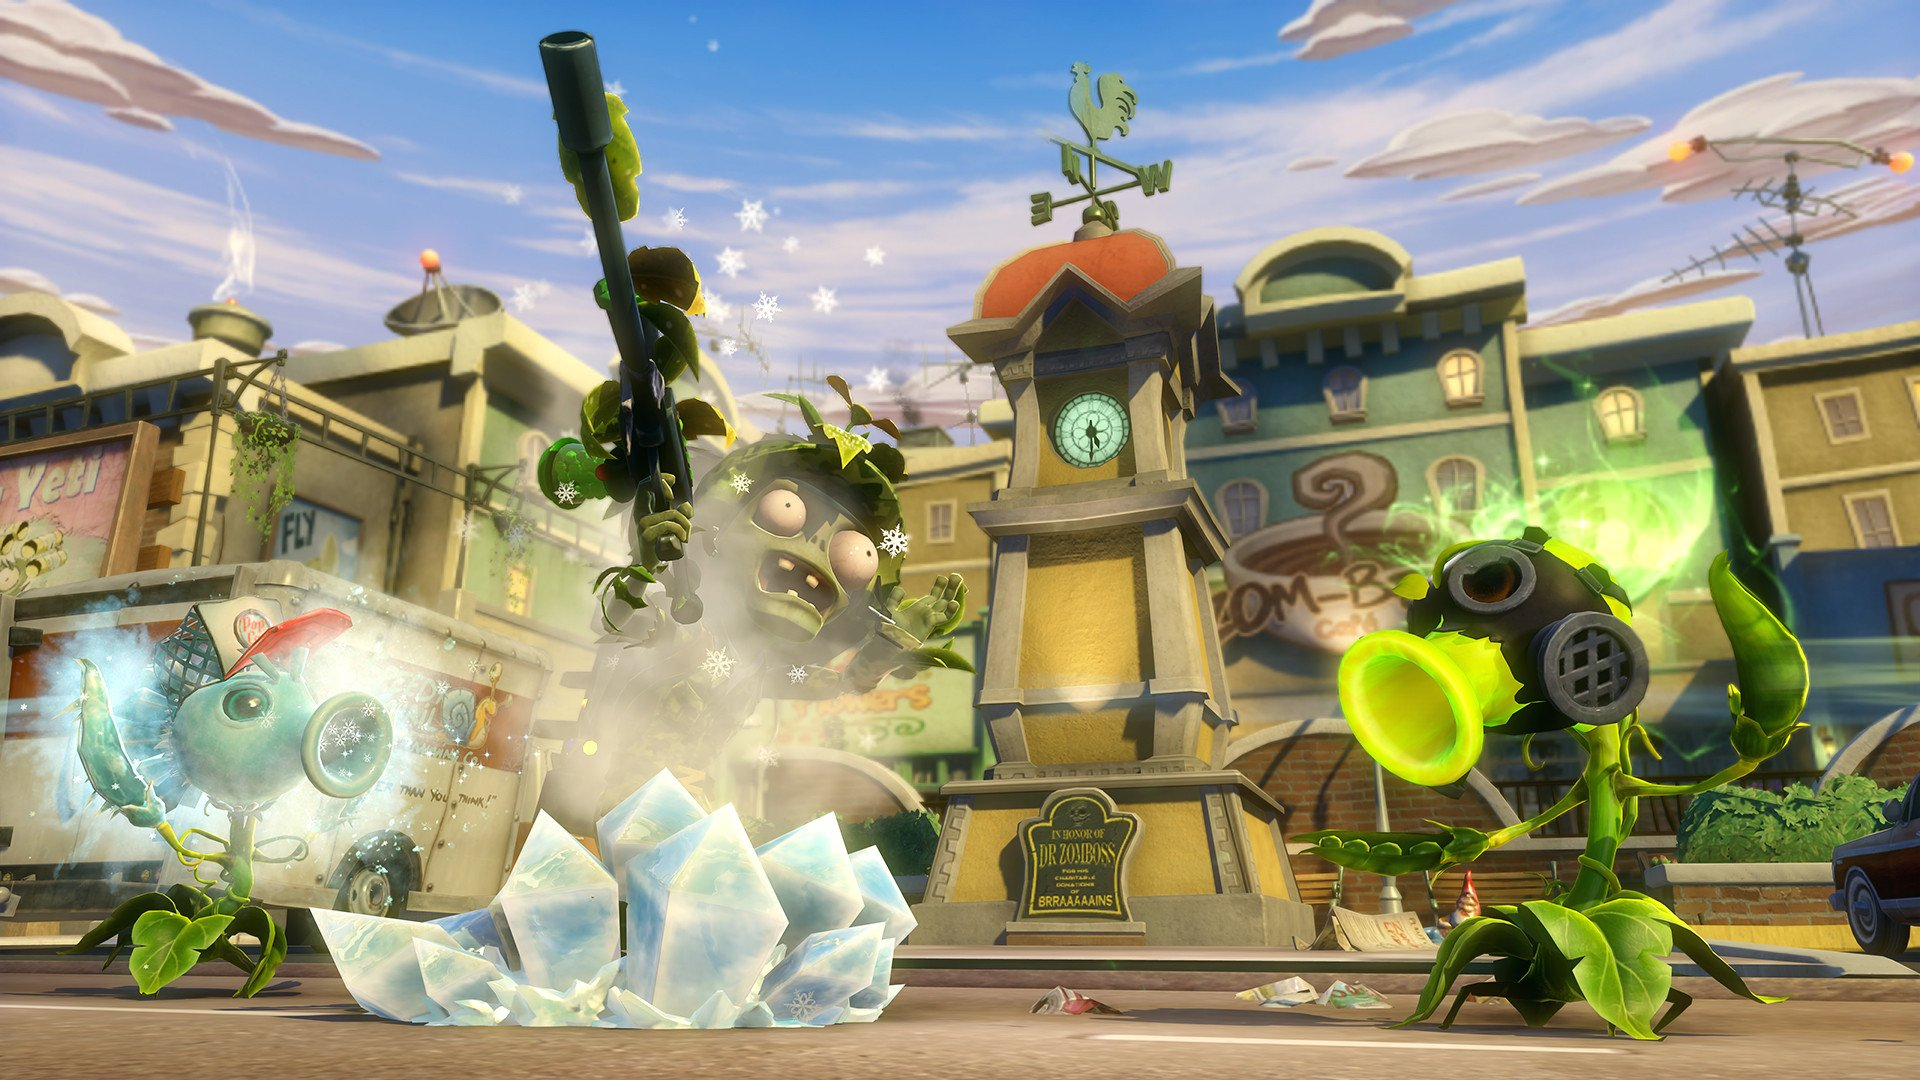 Plants vs zombies garden warfare para xbox one 3djuegos - Free plants vs zombies garden warfare ...